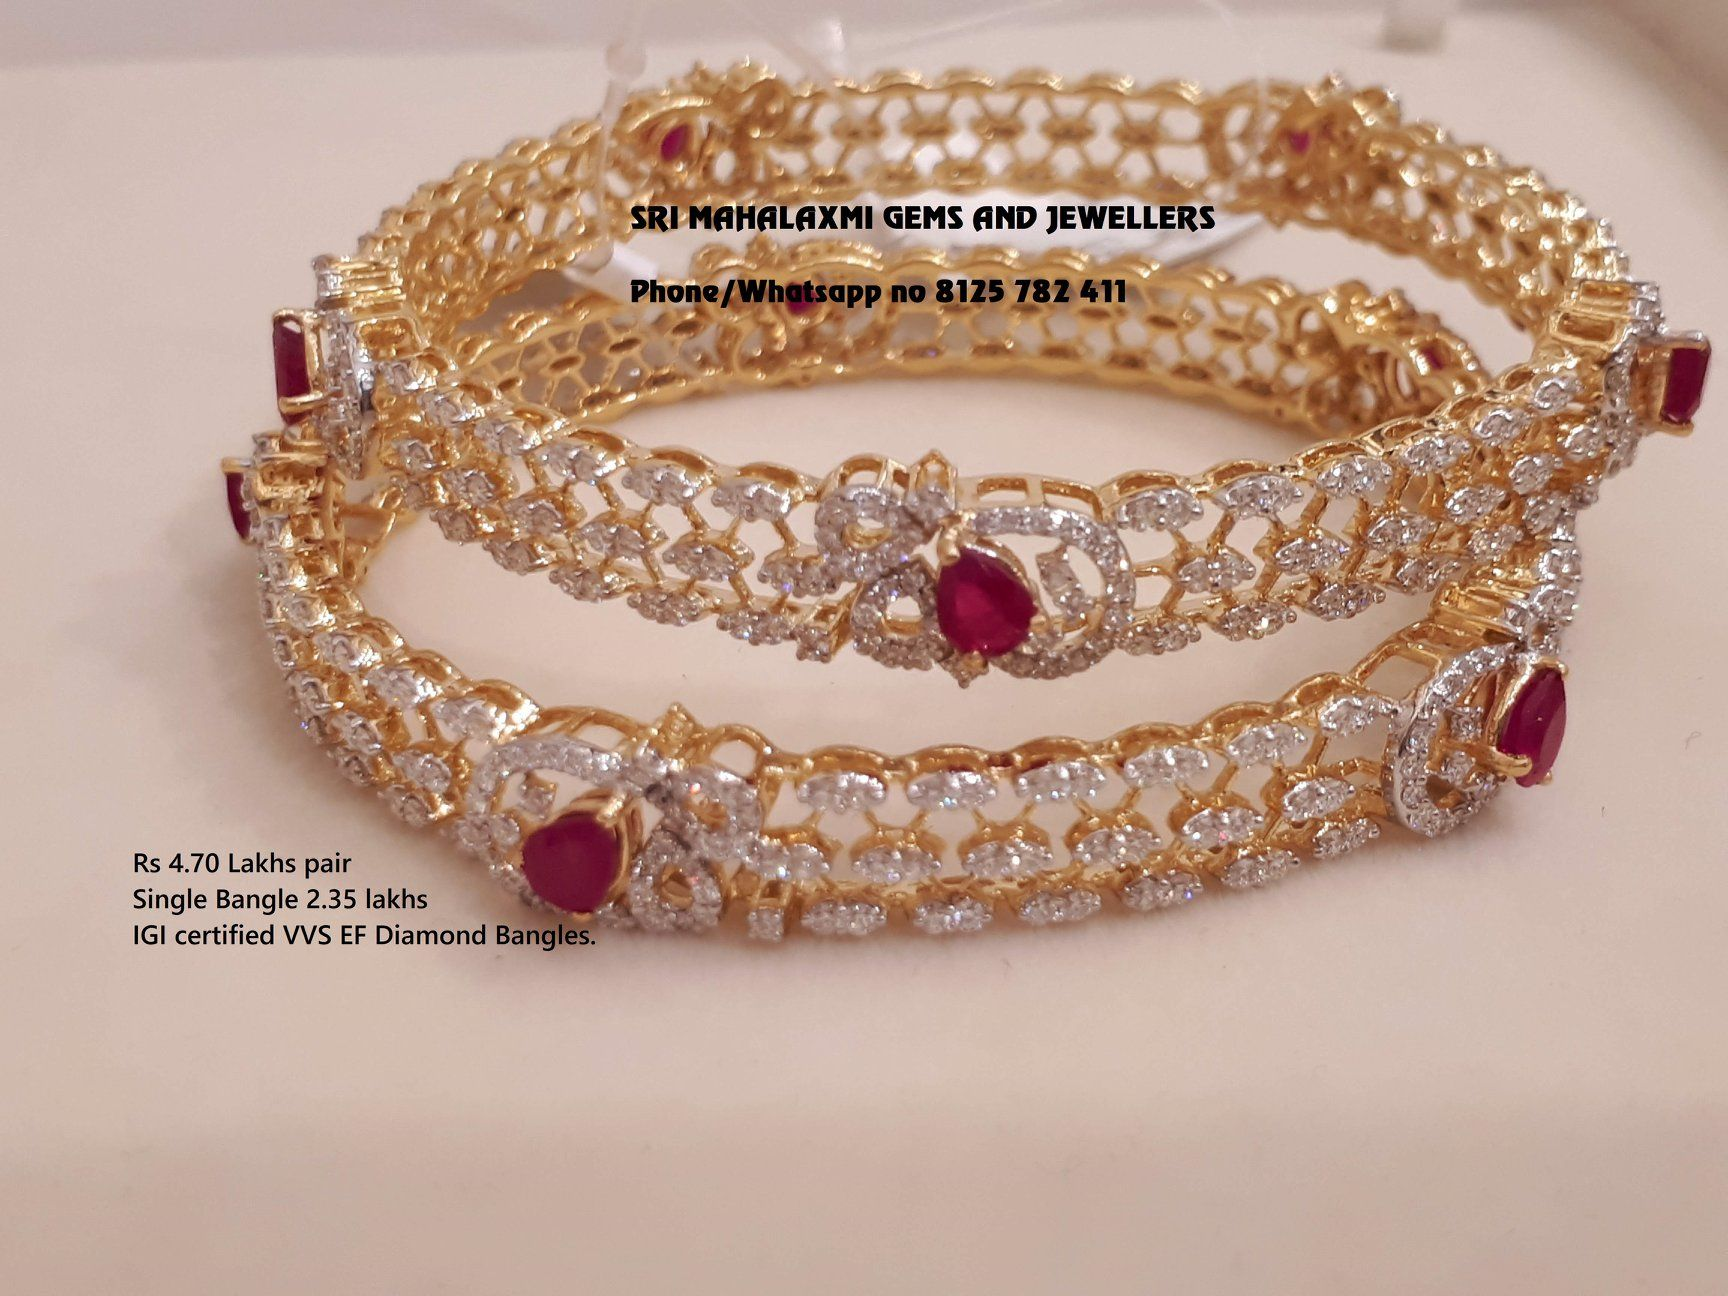 66da1b64a7 Sri Mahalaxmi Gems and Jewellers always quote the total price of ornament .  Presenting a very